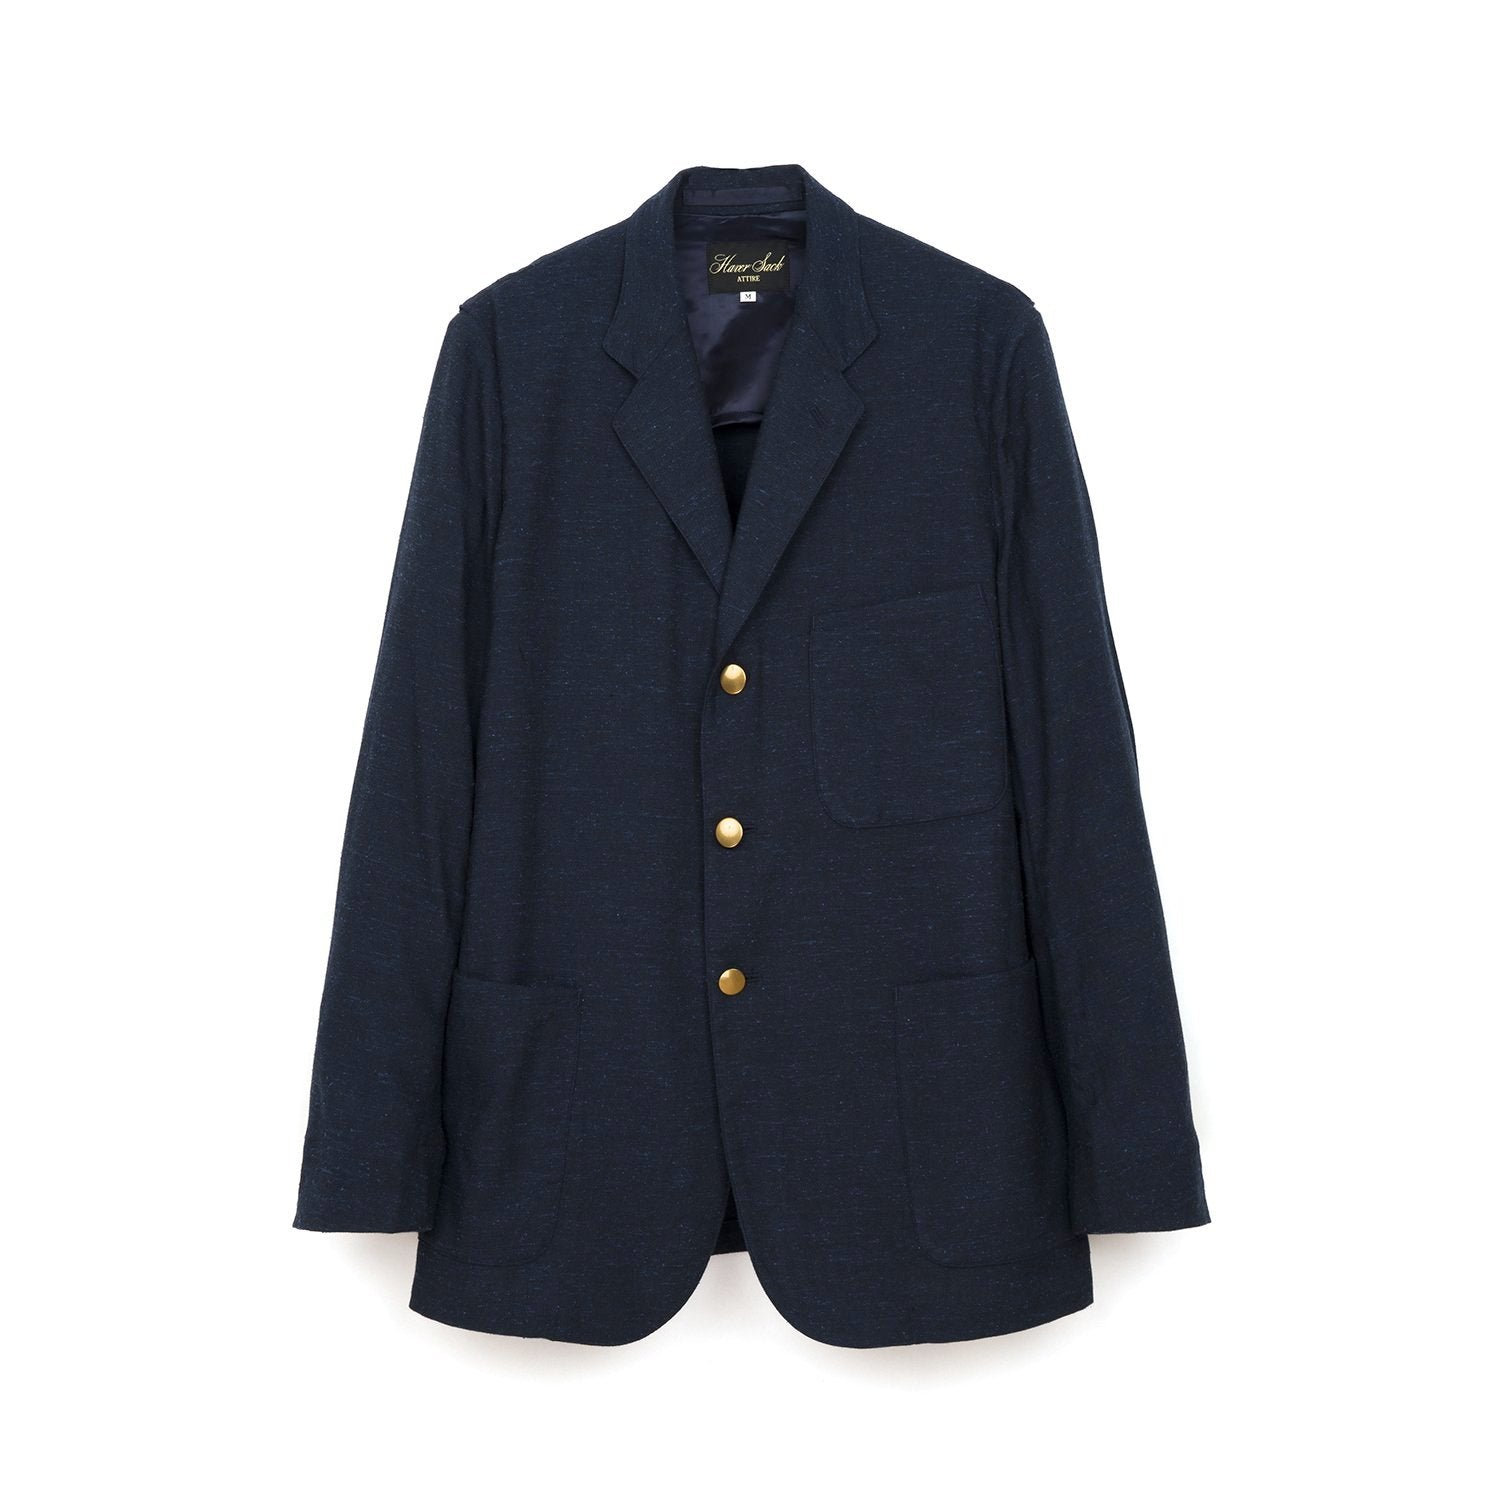 Haversack Nep Twill Jacket Navy - 871810/59